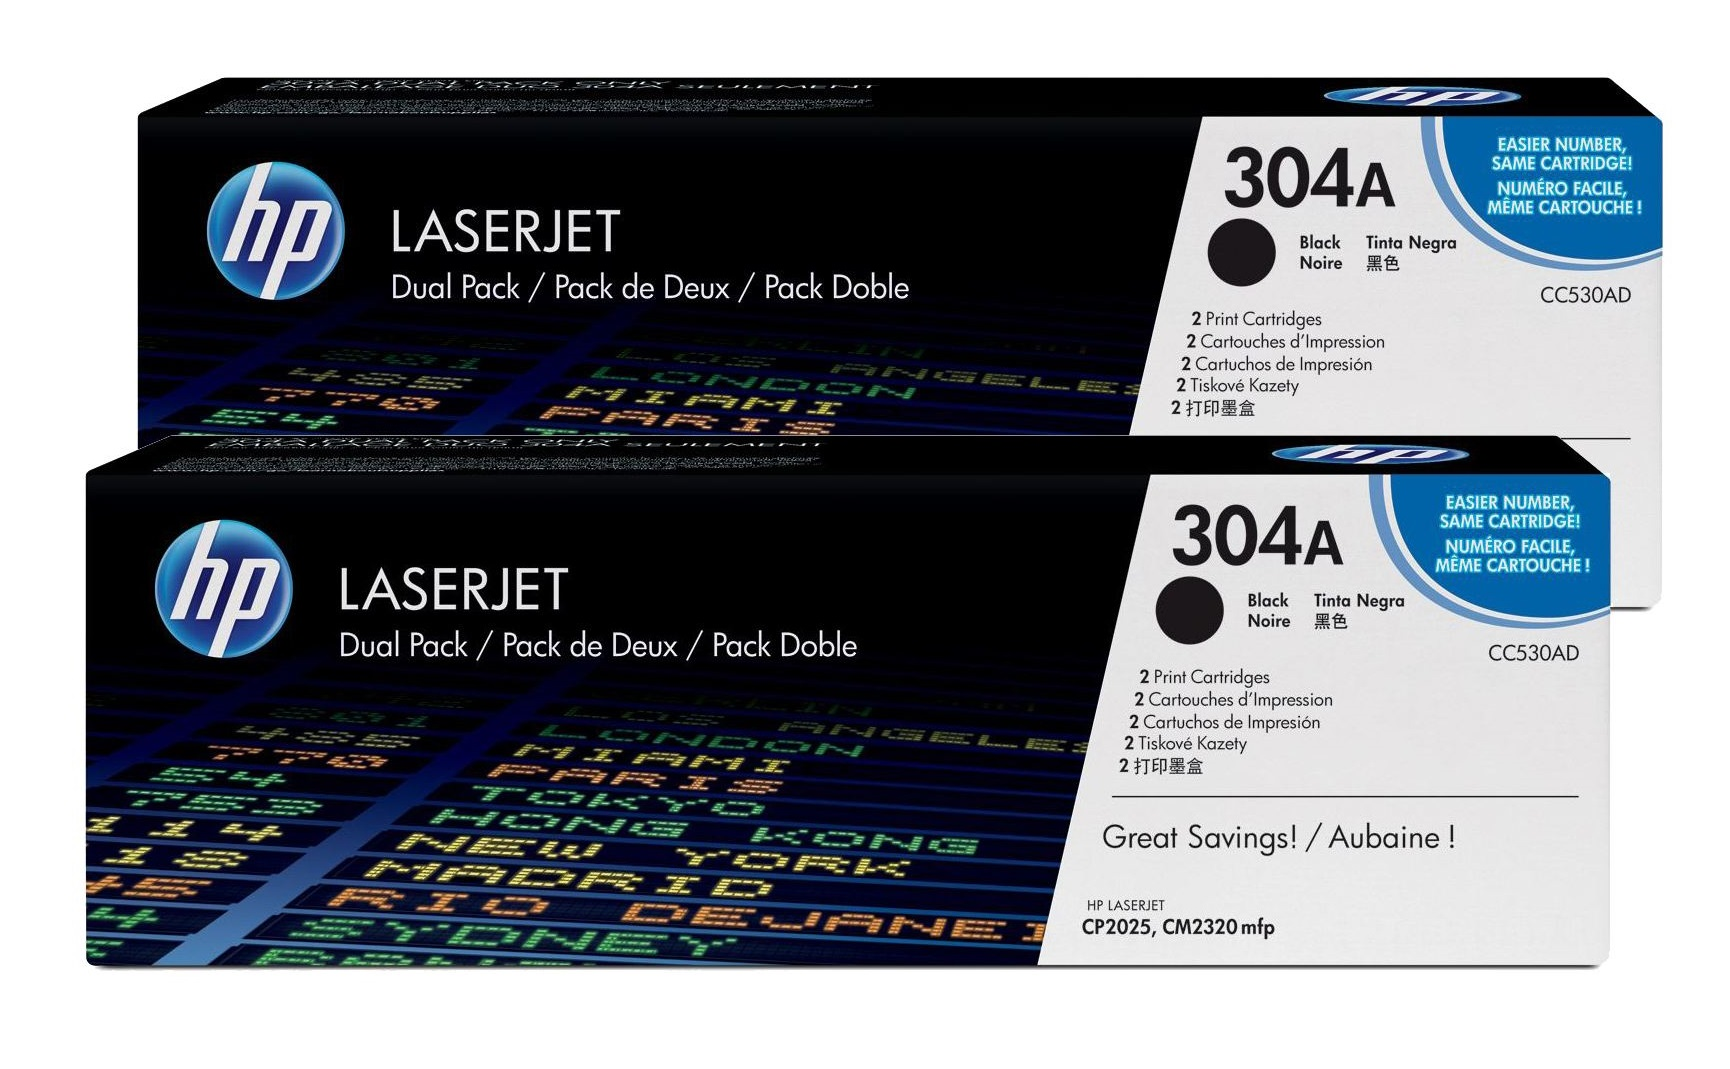 HP 304A Black Dual Pack Toner Cartridge